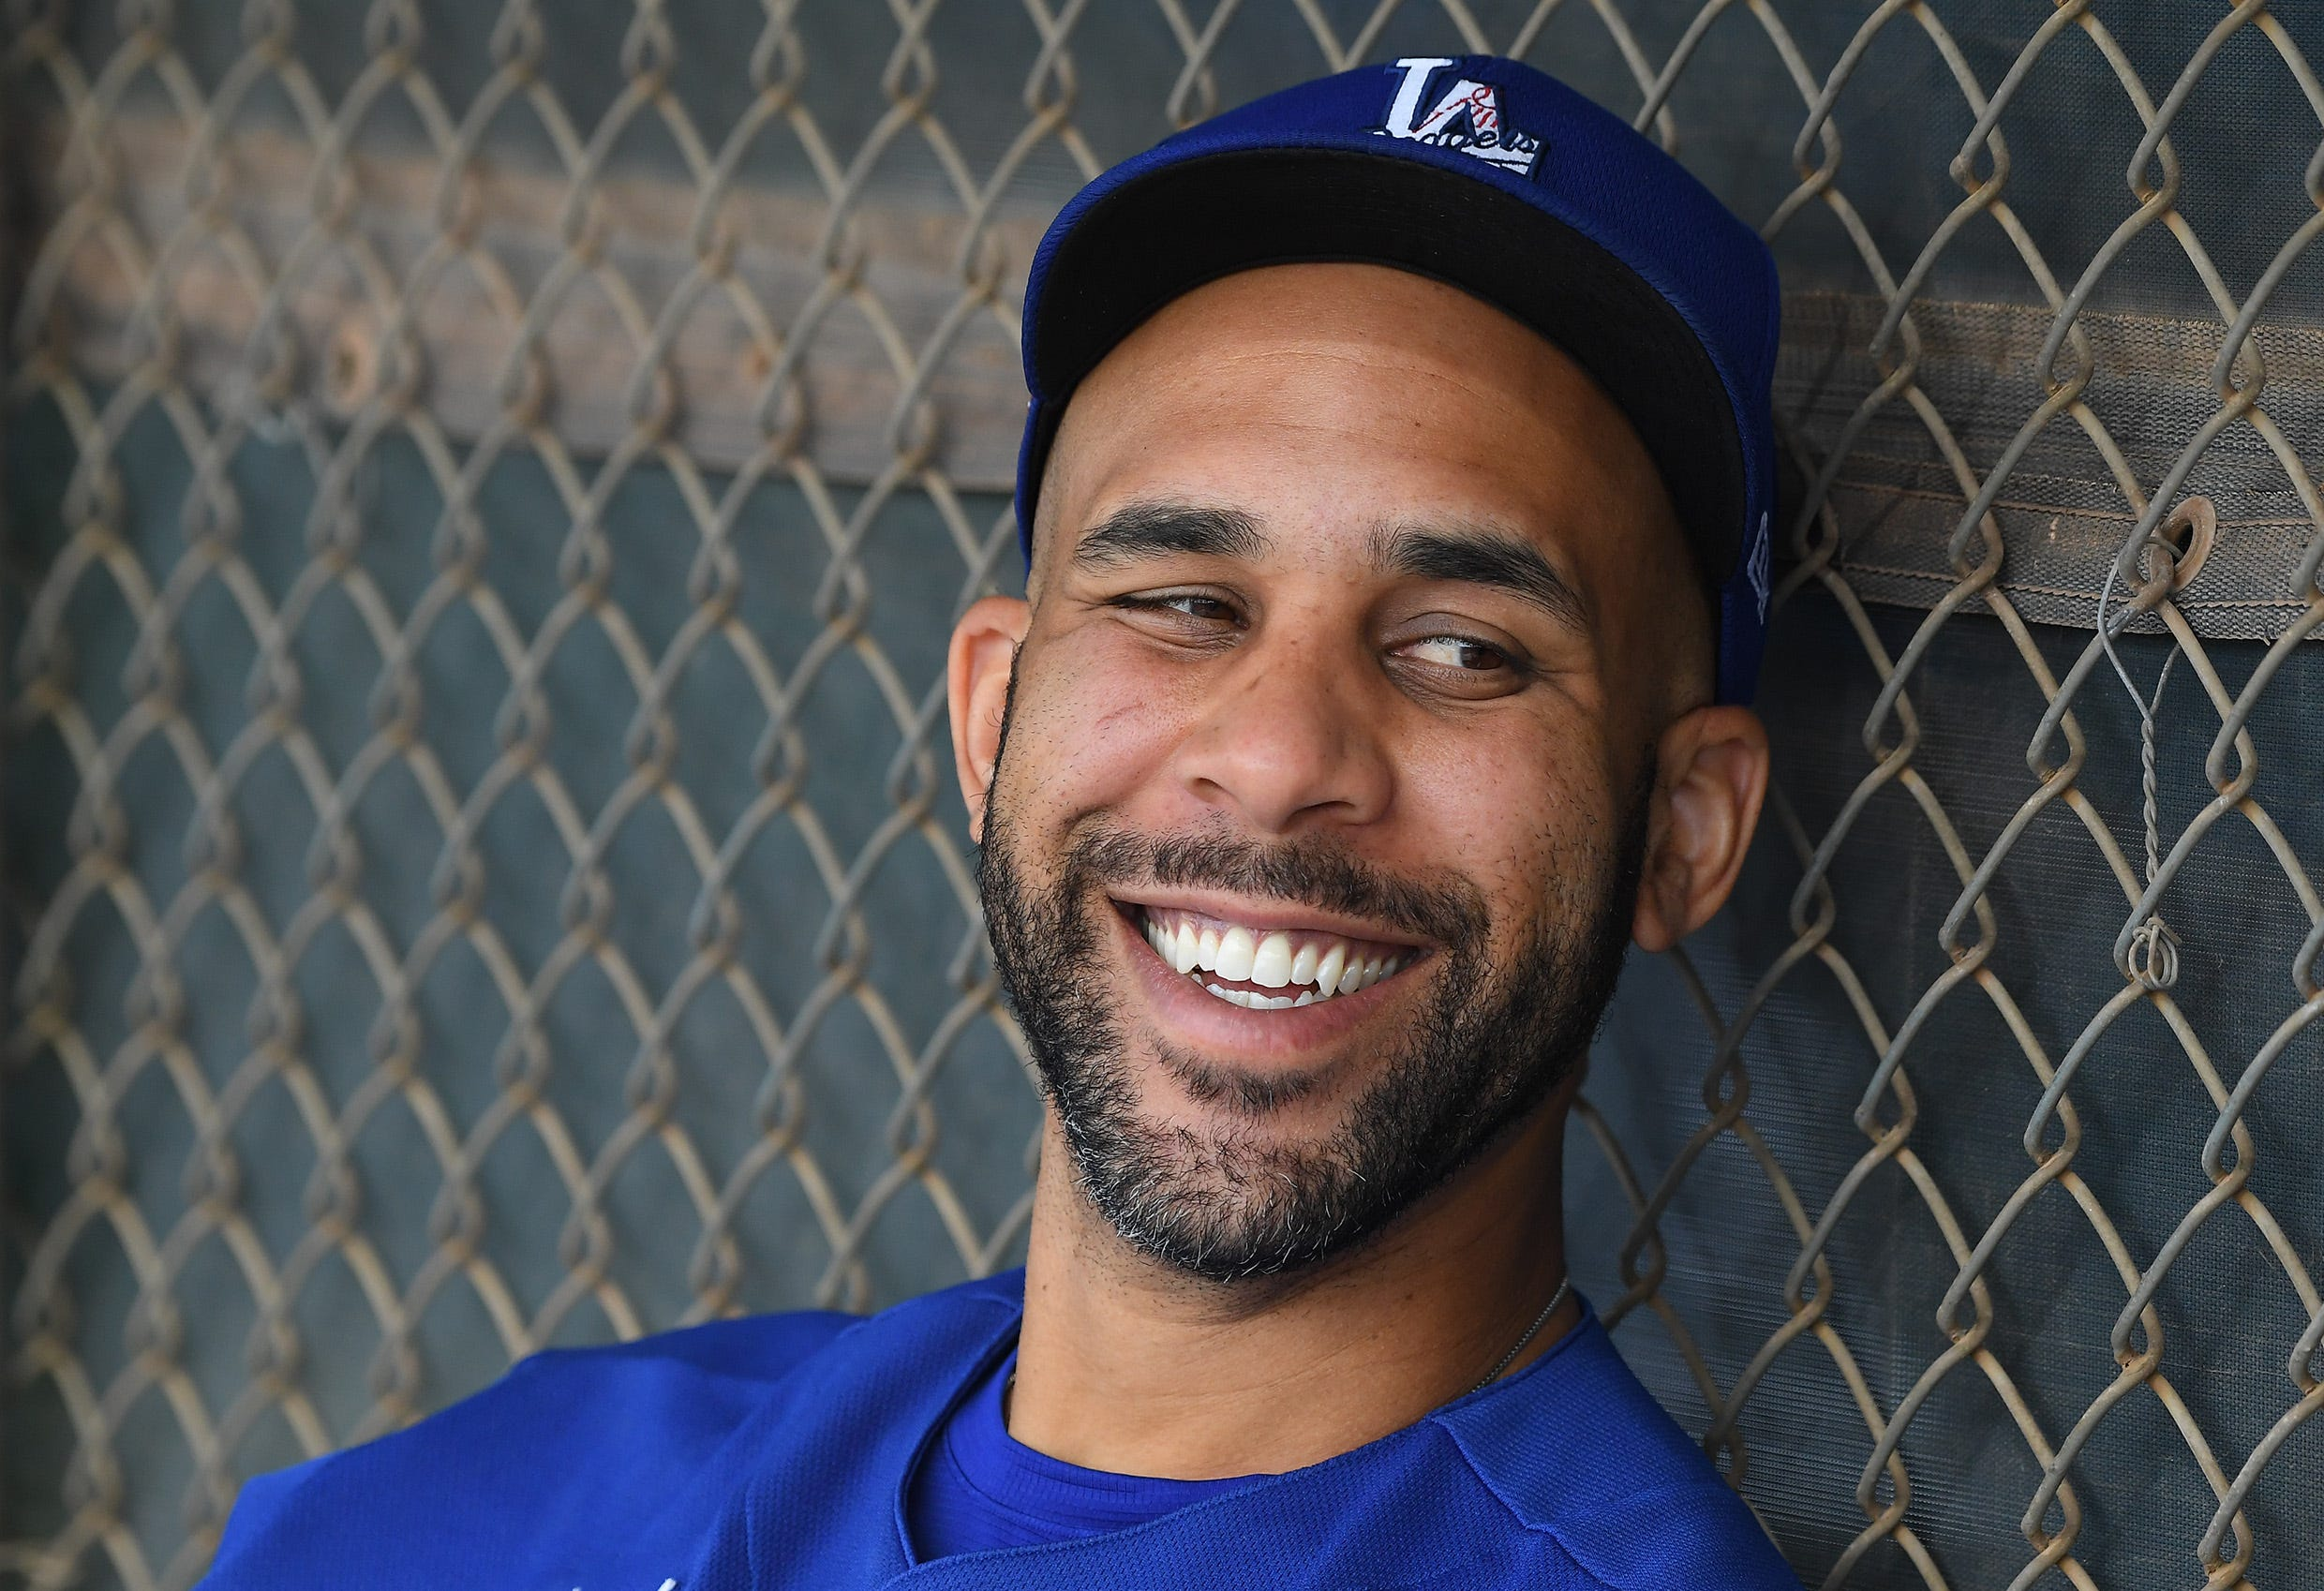 Presence of David Price will be felt at World Series, even without Dodgers pitcher present